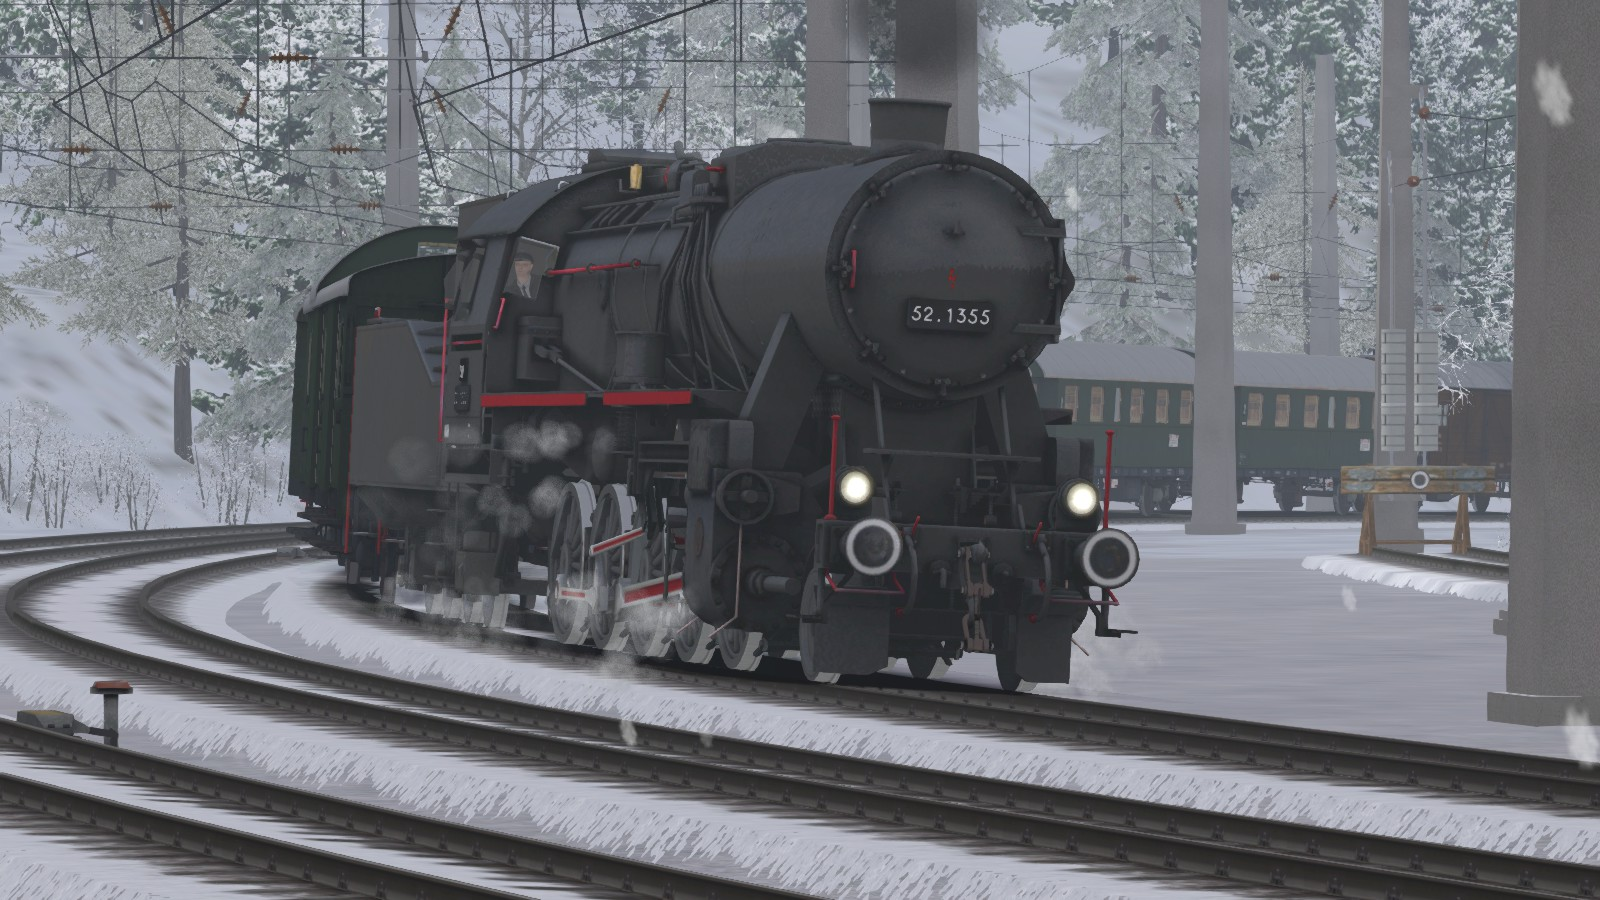 https://i2.wp.com/www.steamtrainsunlimited.com/wp-content/uploads/2016/05/2015-12-31_00002-1.jpg